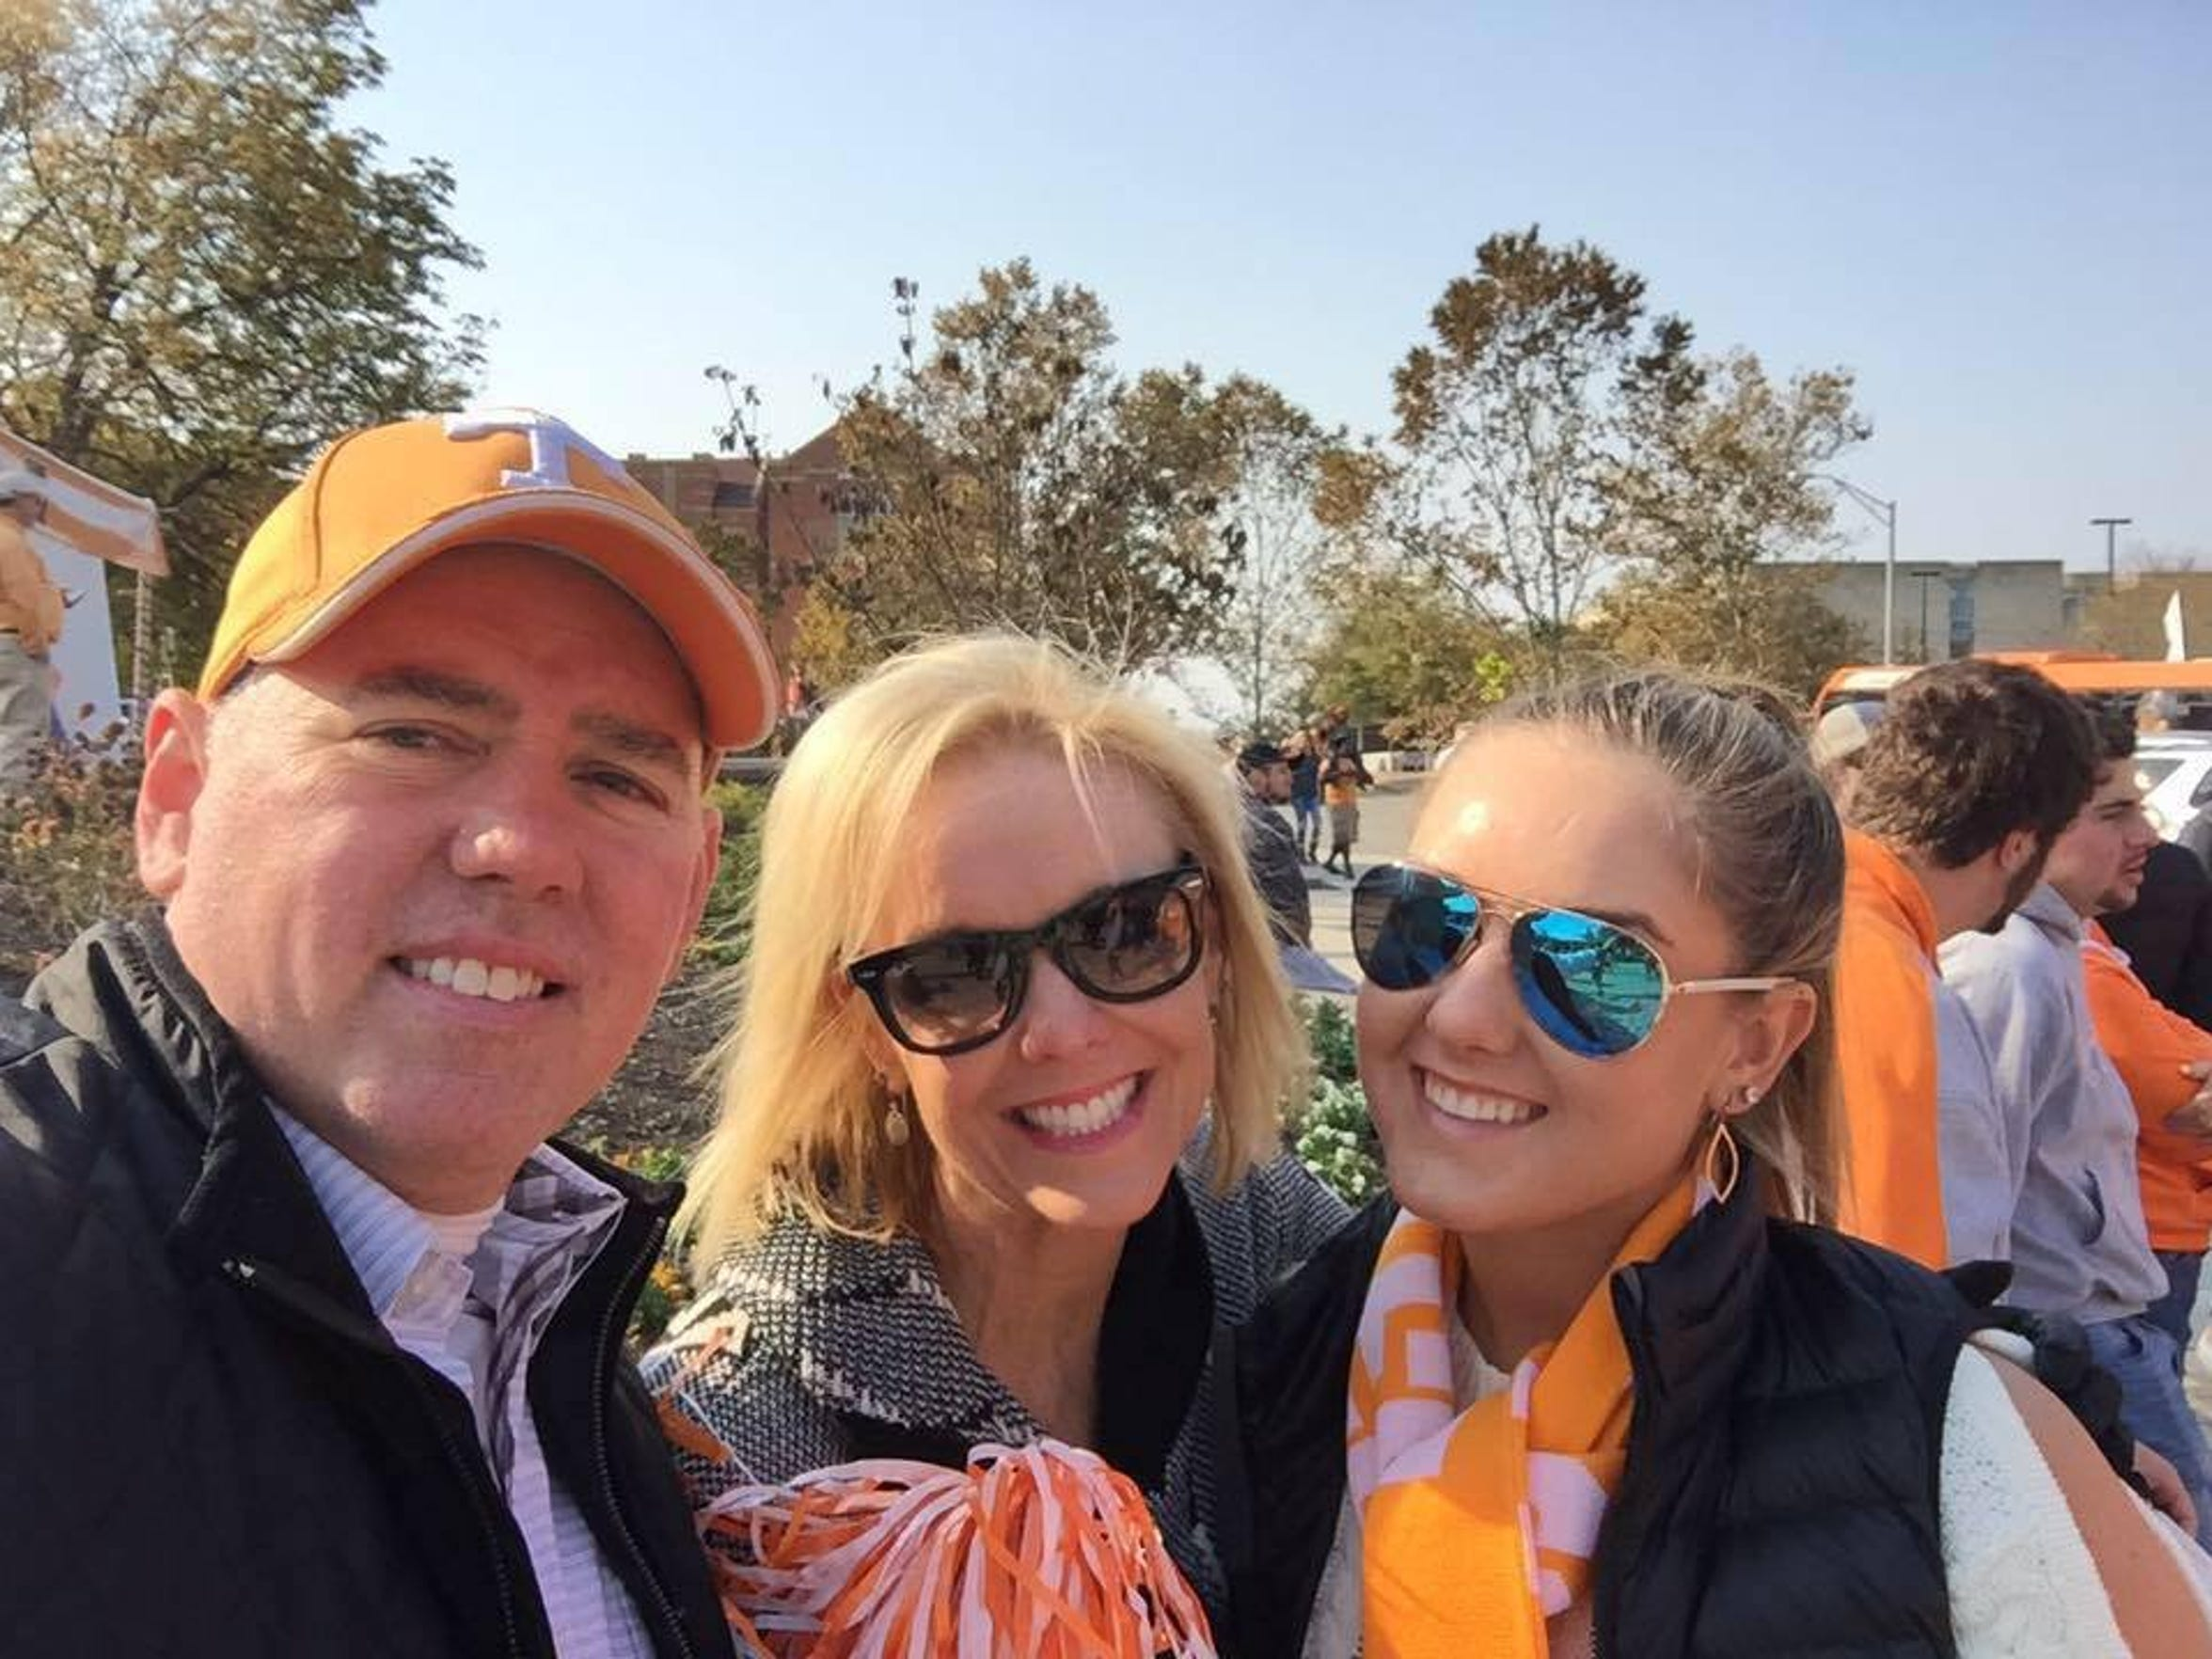 Mark (left), Yvette (middle) and Hadley (right) Walts are all supporters of the University of Tennesse.